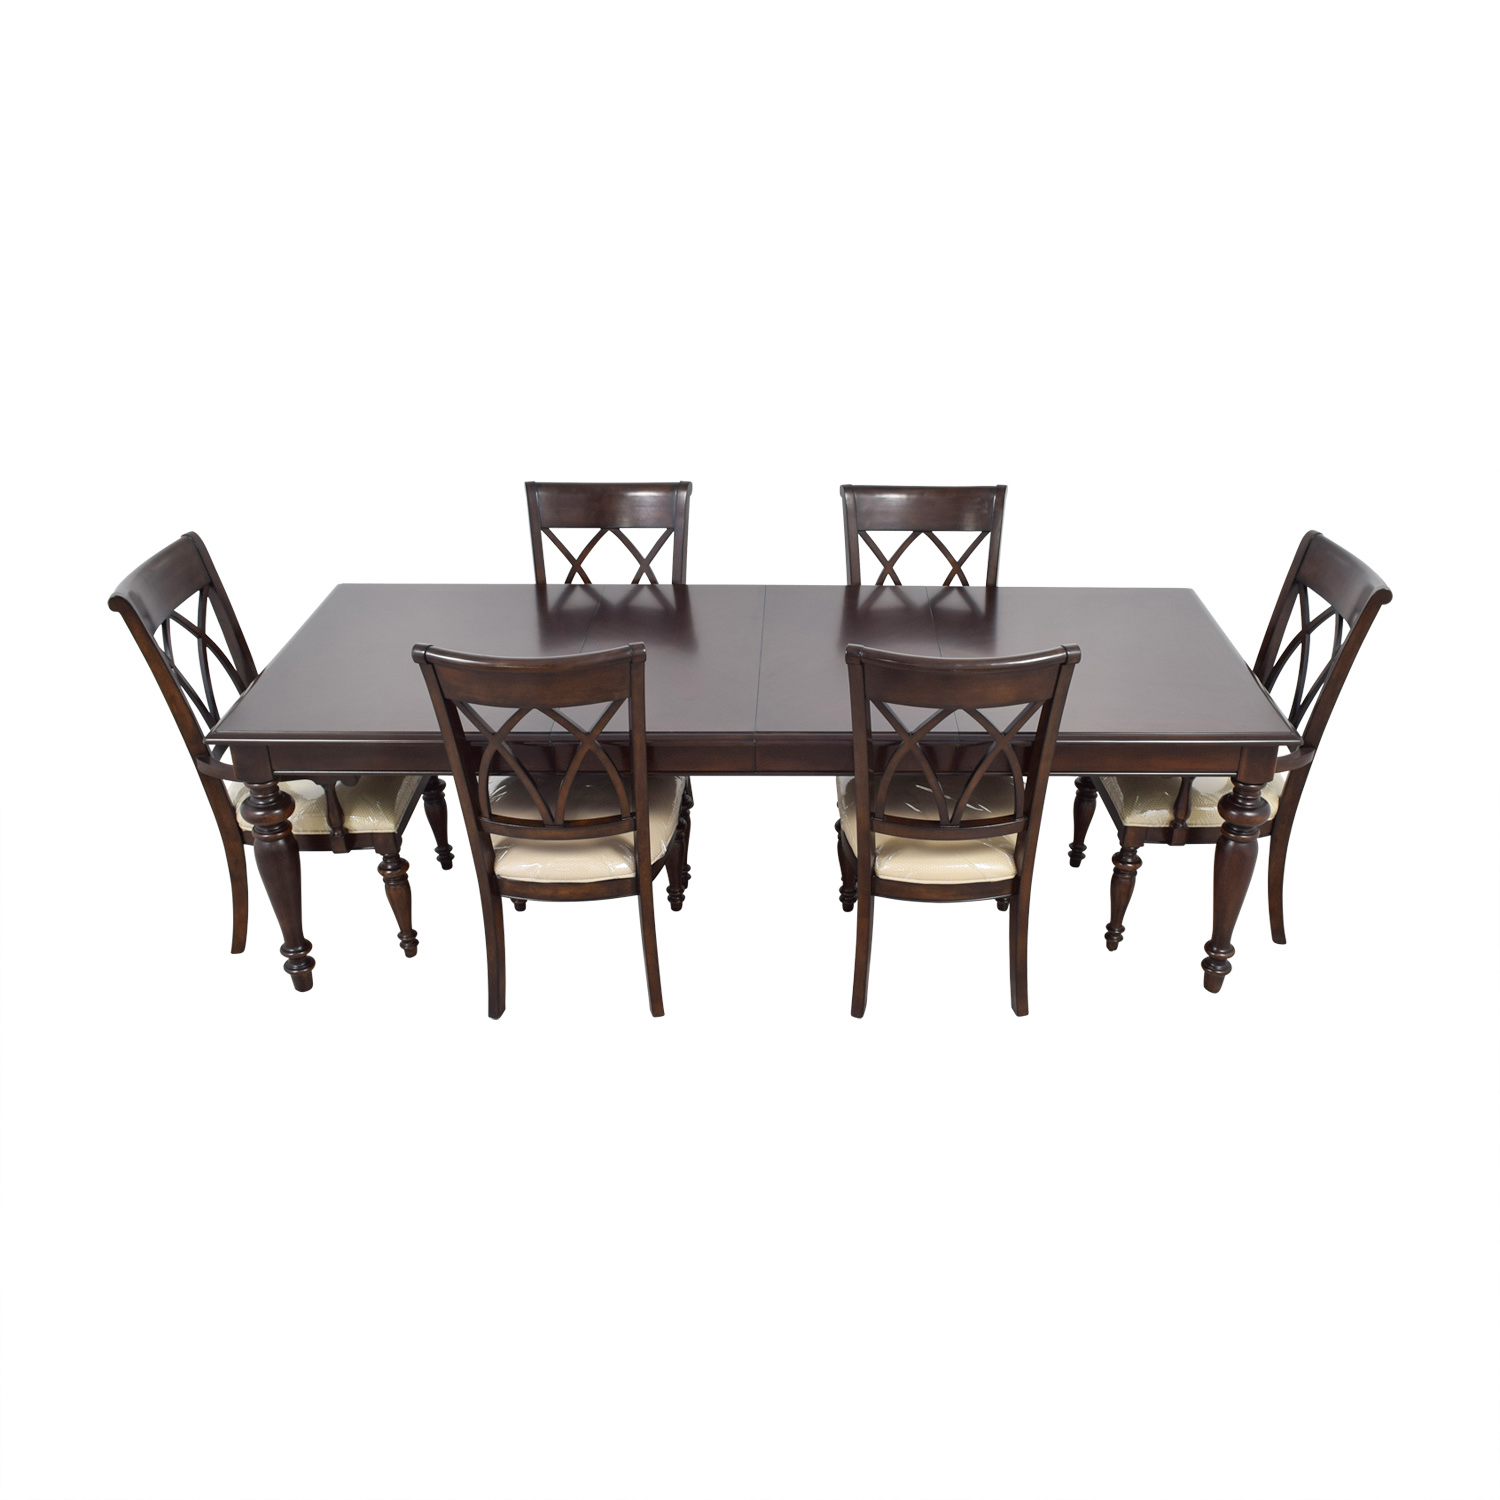 Macys Wood Dining Set with Beige Upholstery / Tables